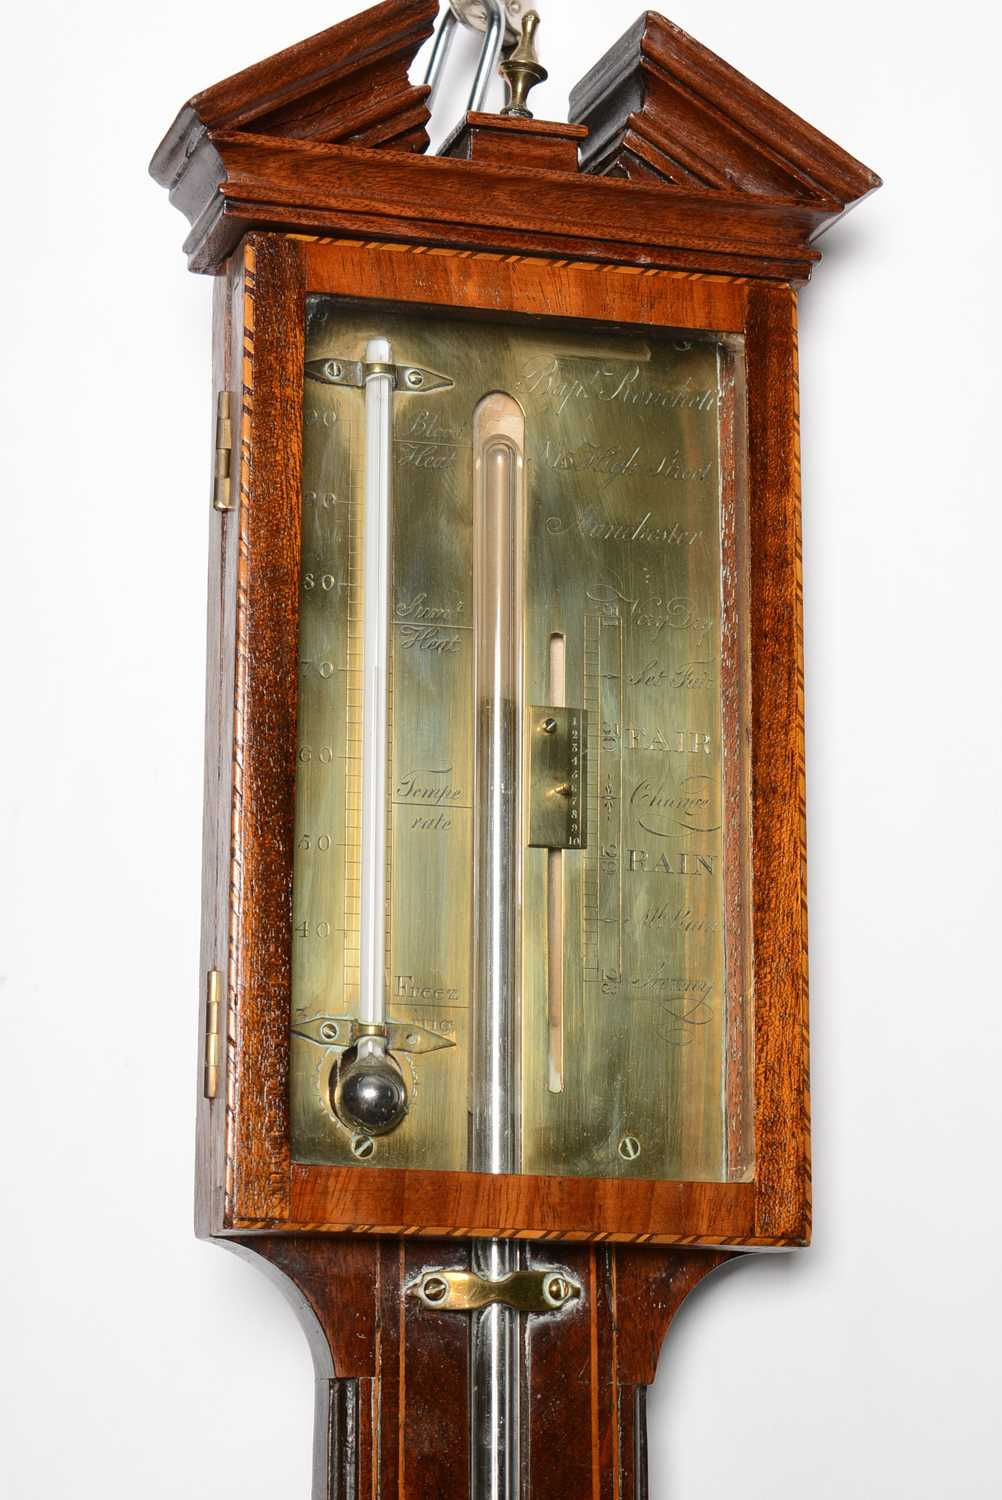 Late George III mahogany stick barometer by Baptista Ronchetti & Co, Manchester - Image 3 of 3